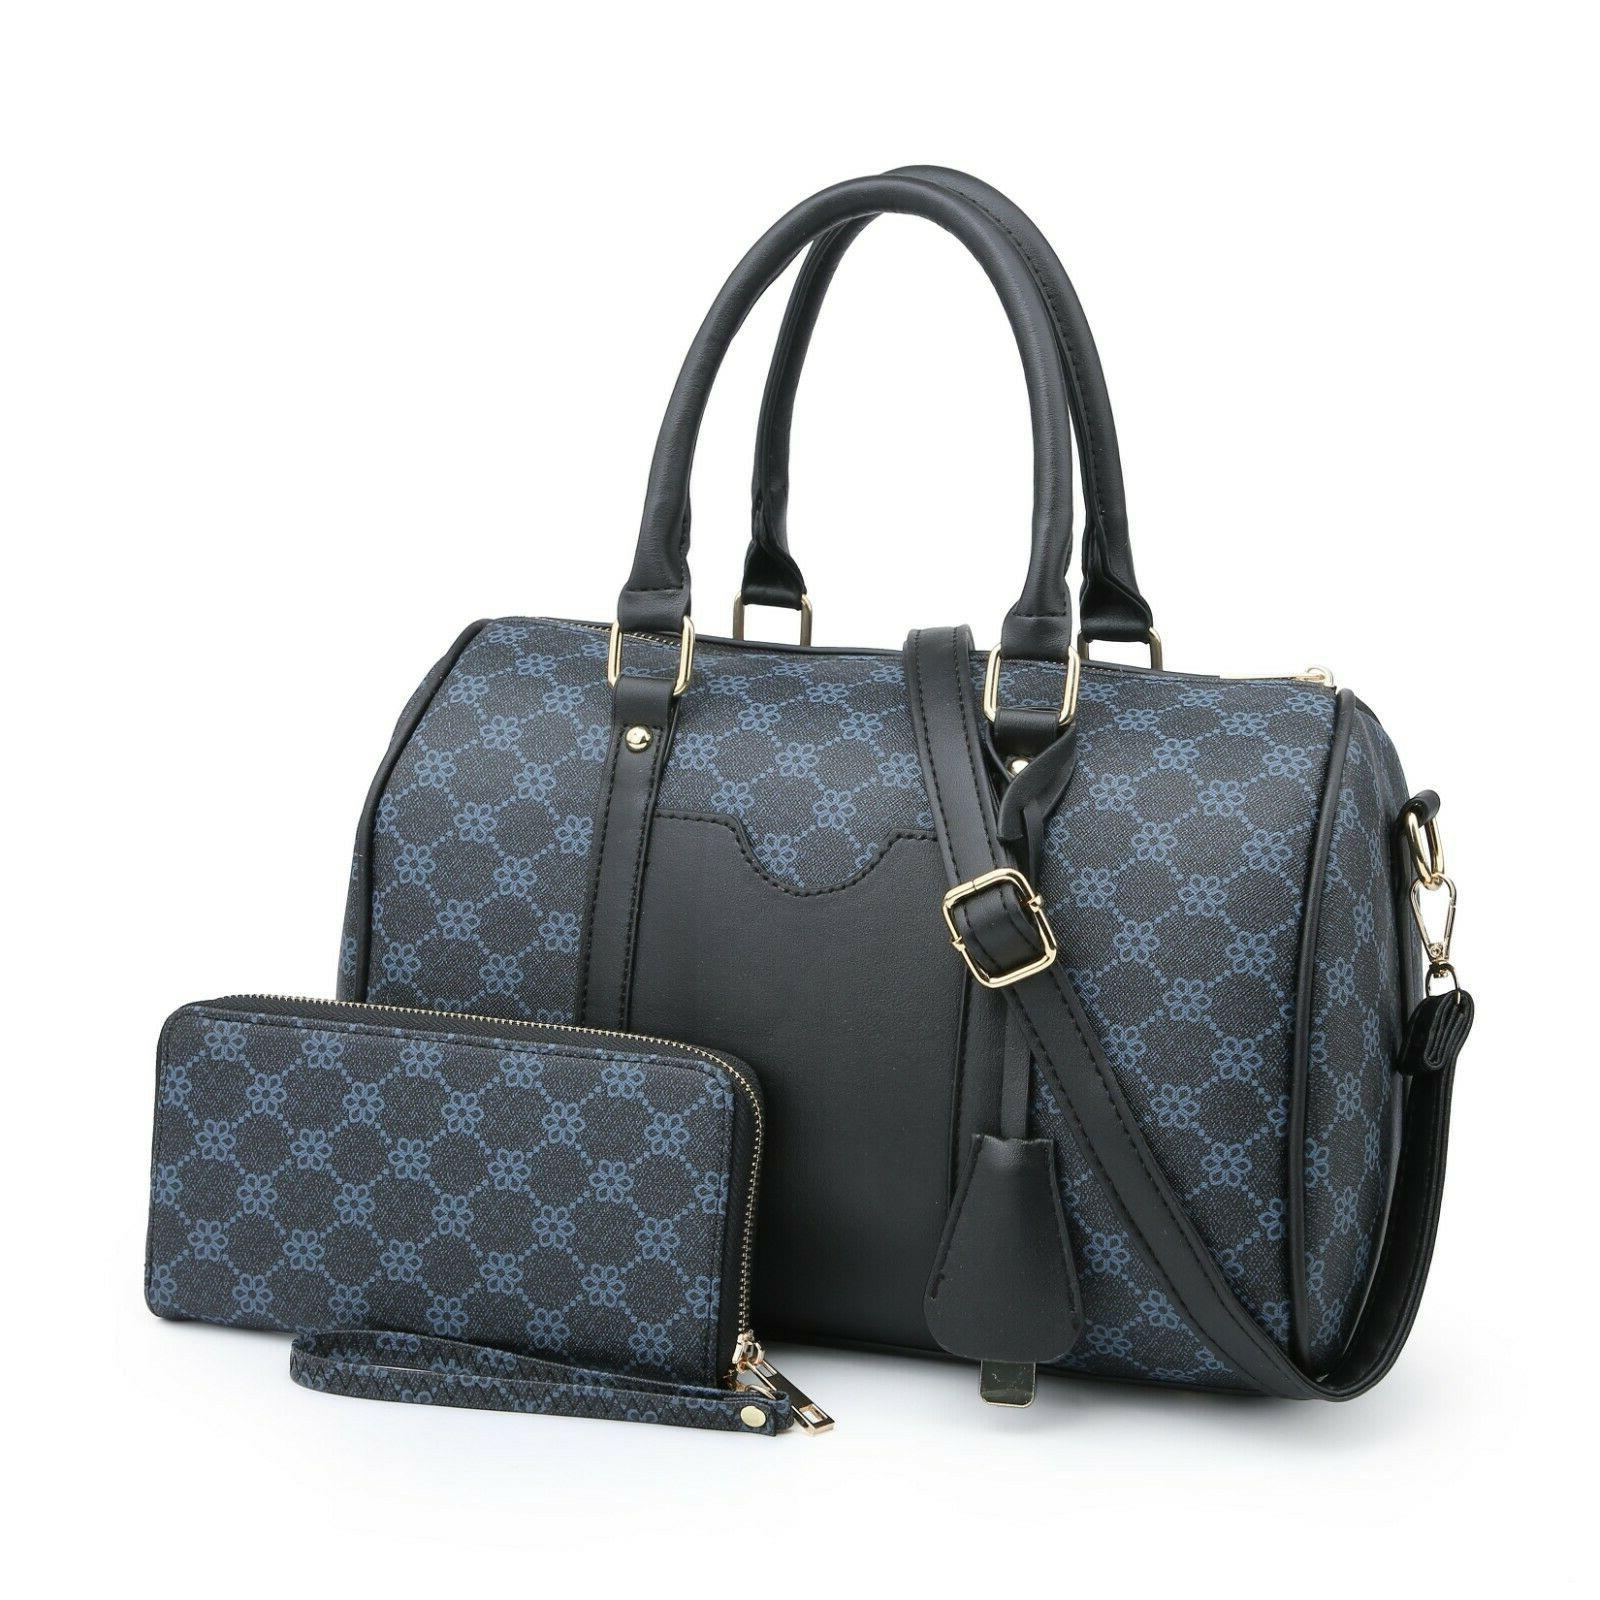 Women's Shoulder Bag Set